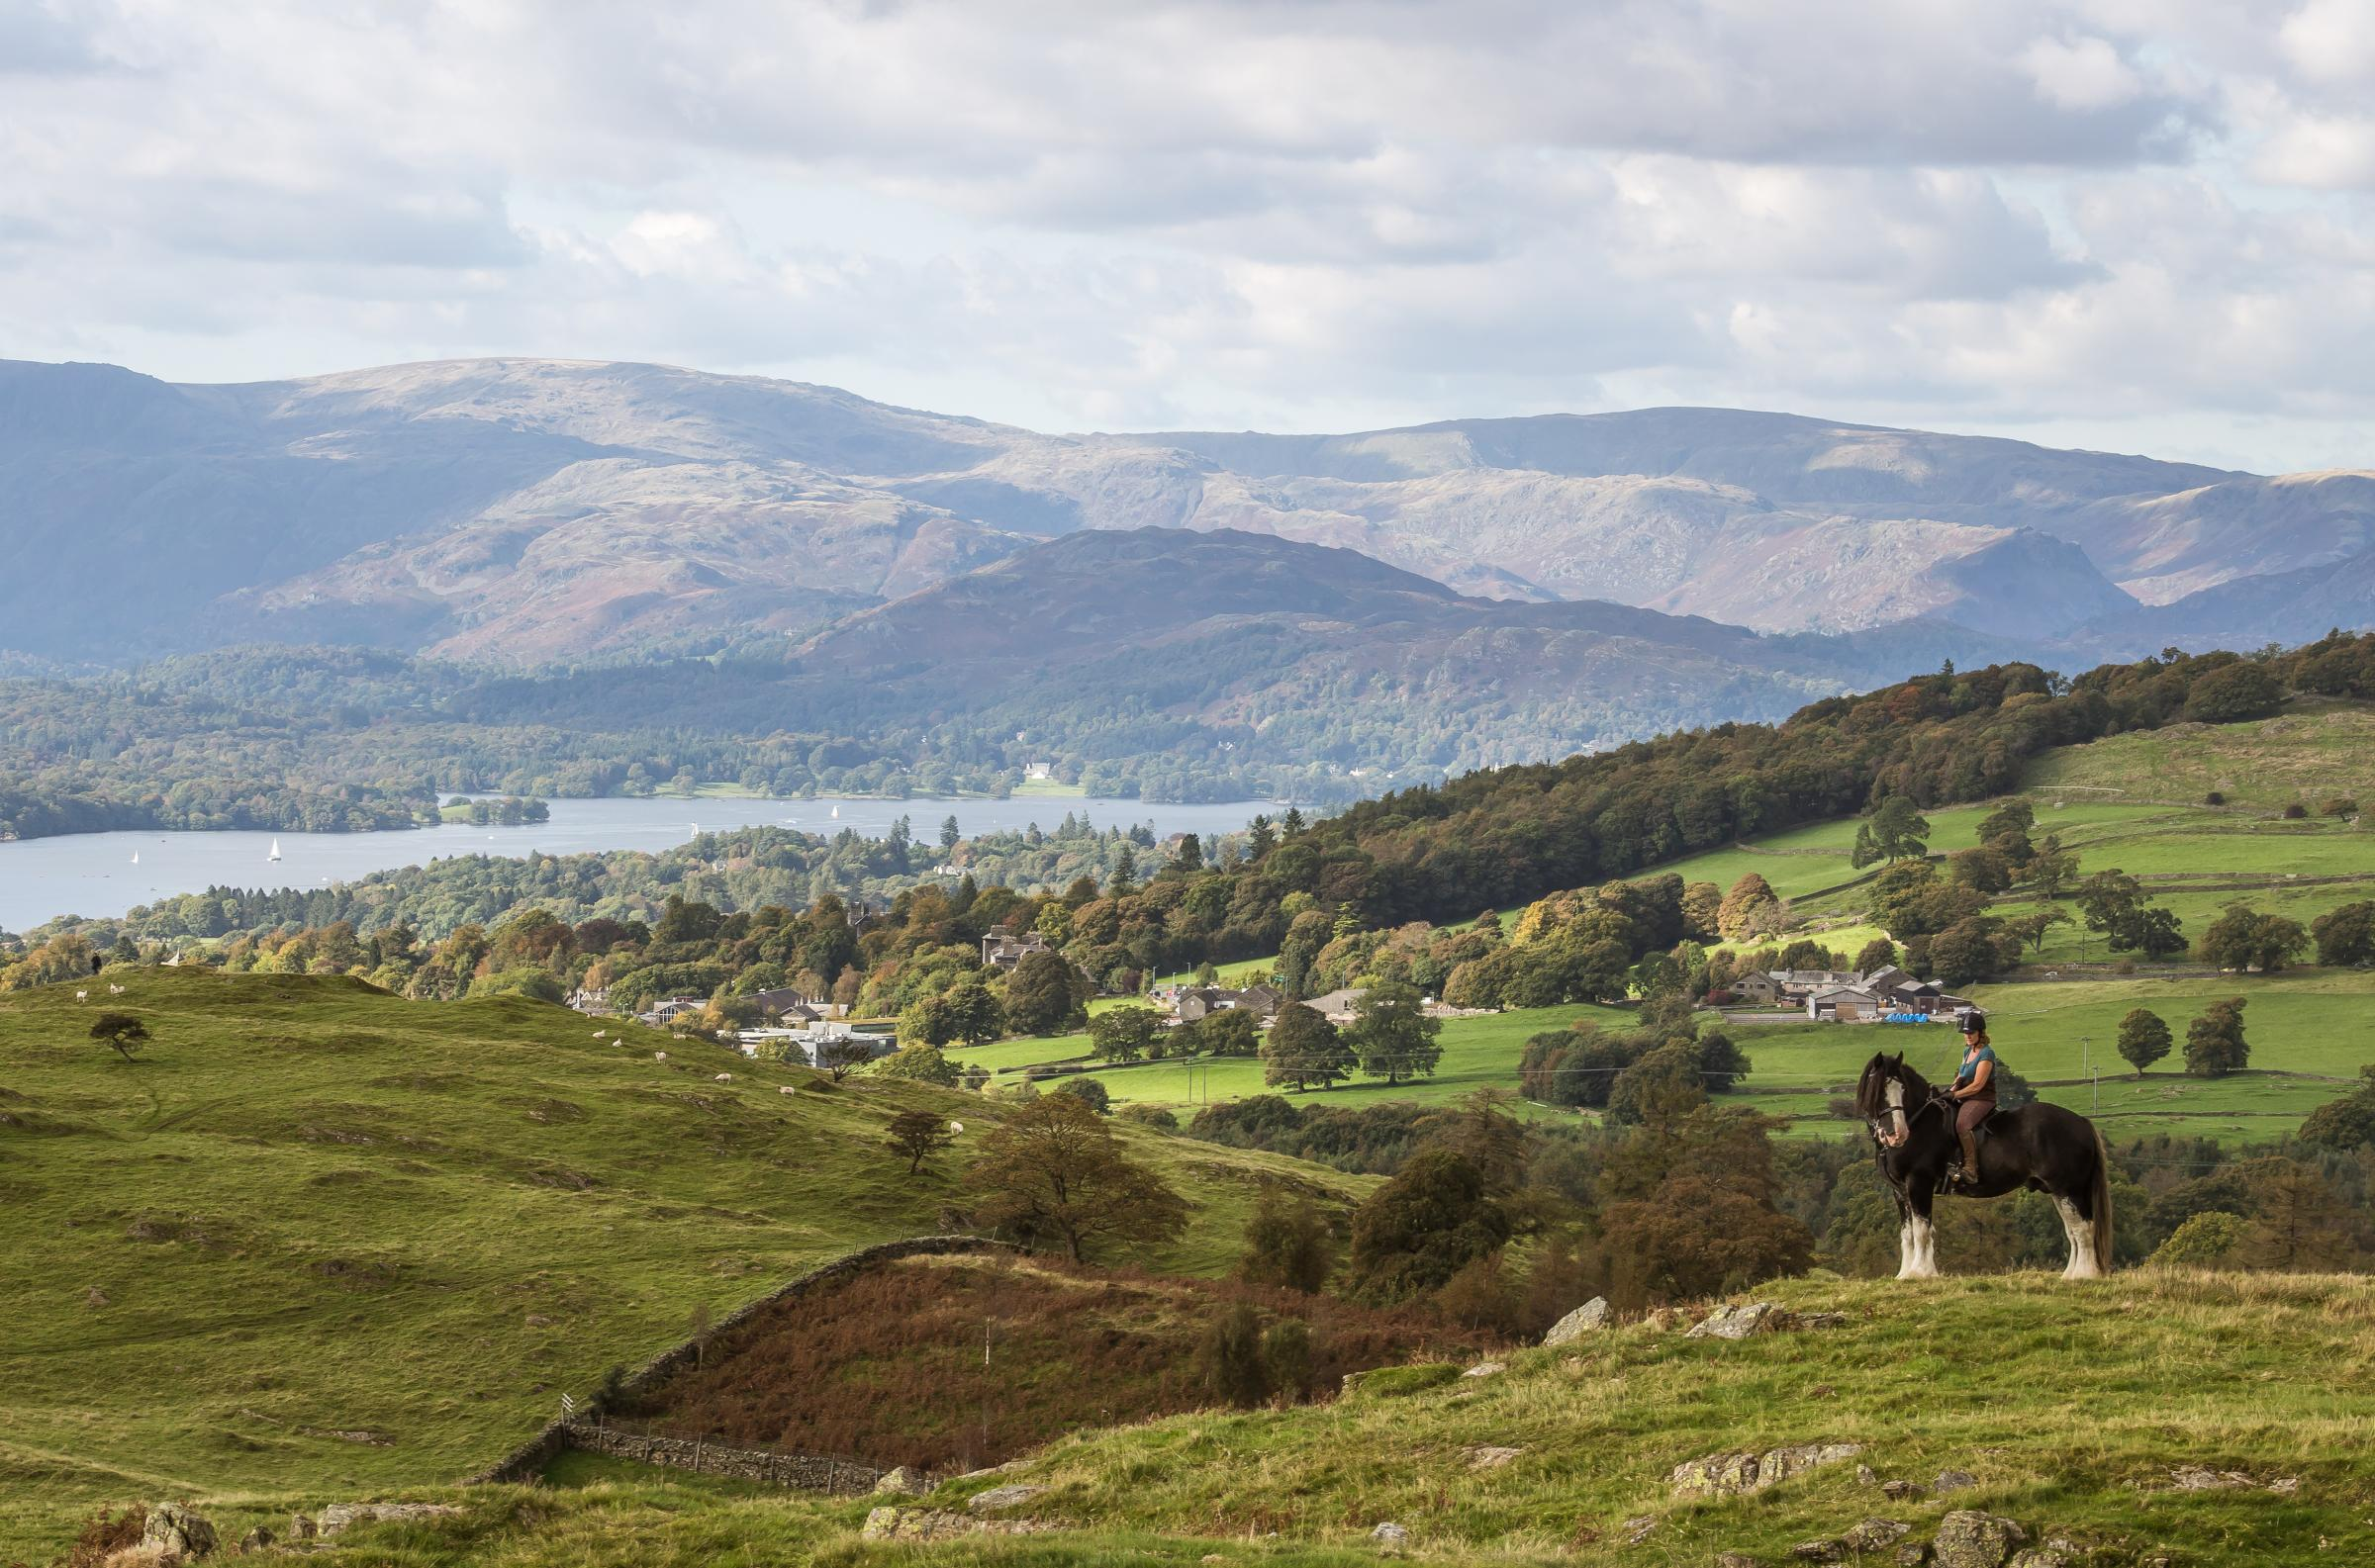 The view overlooking Windermere